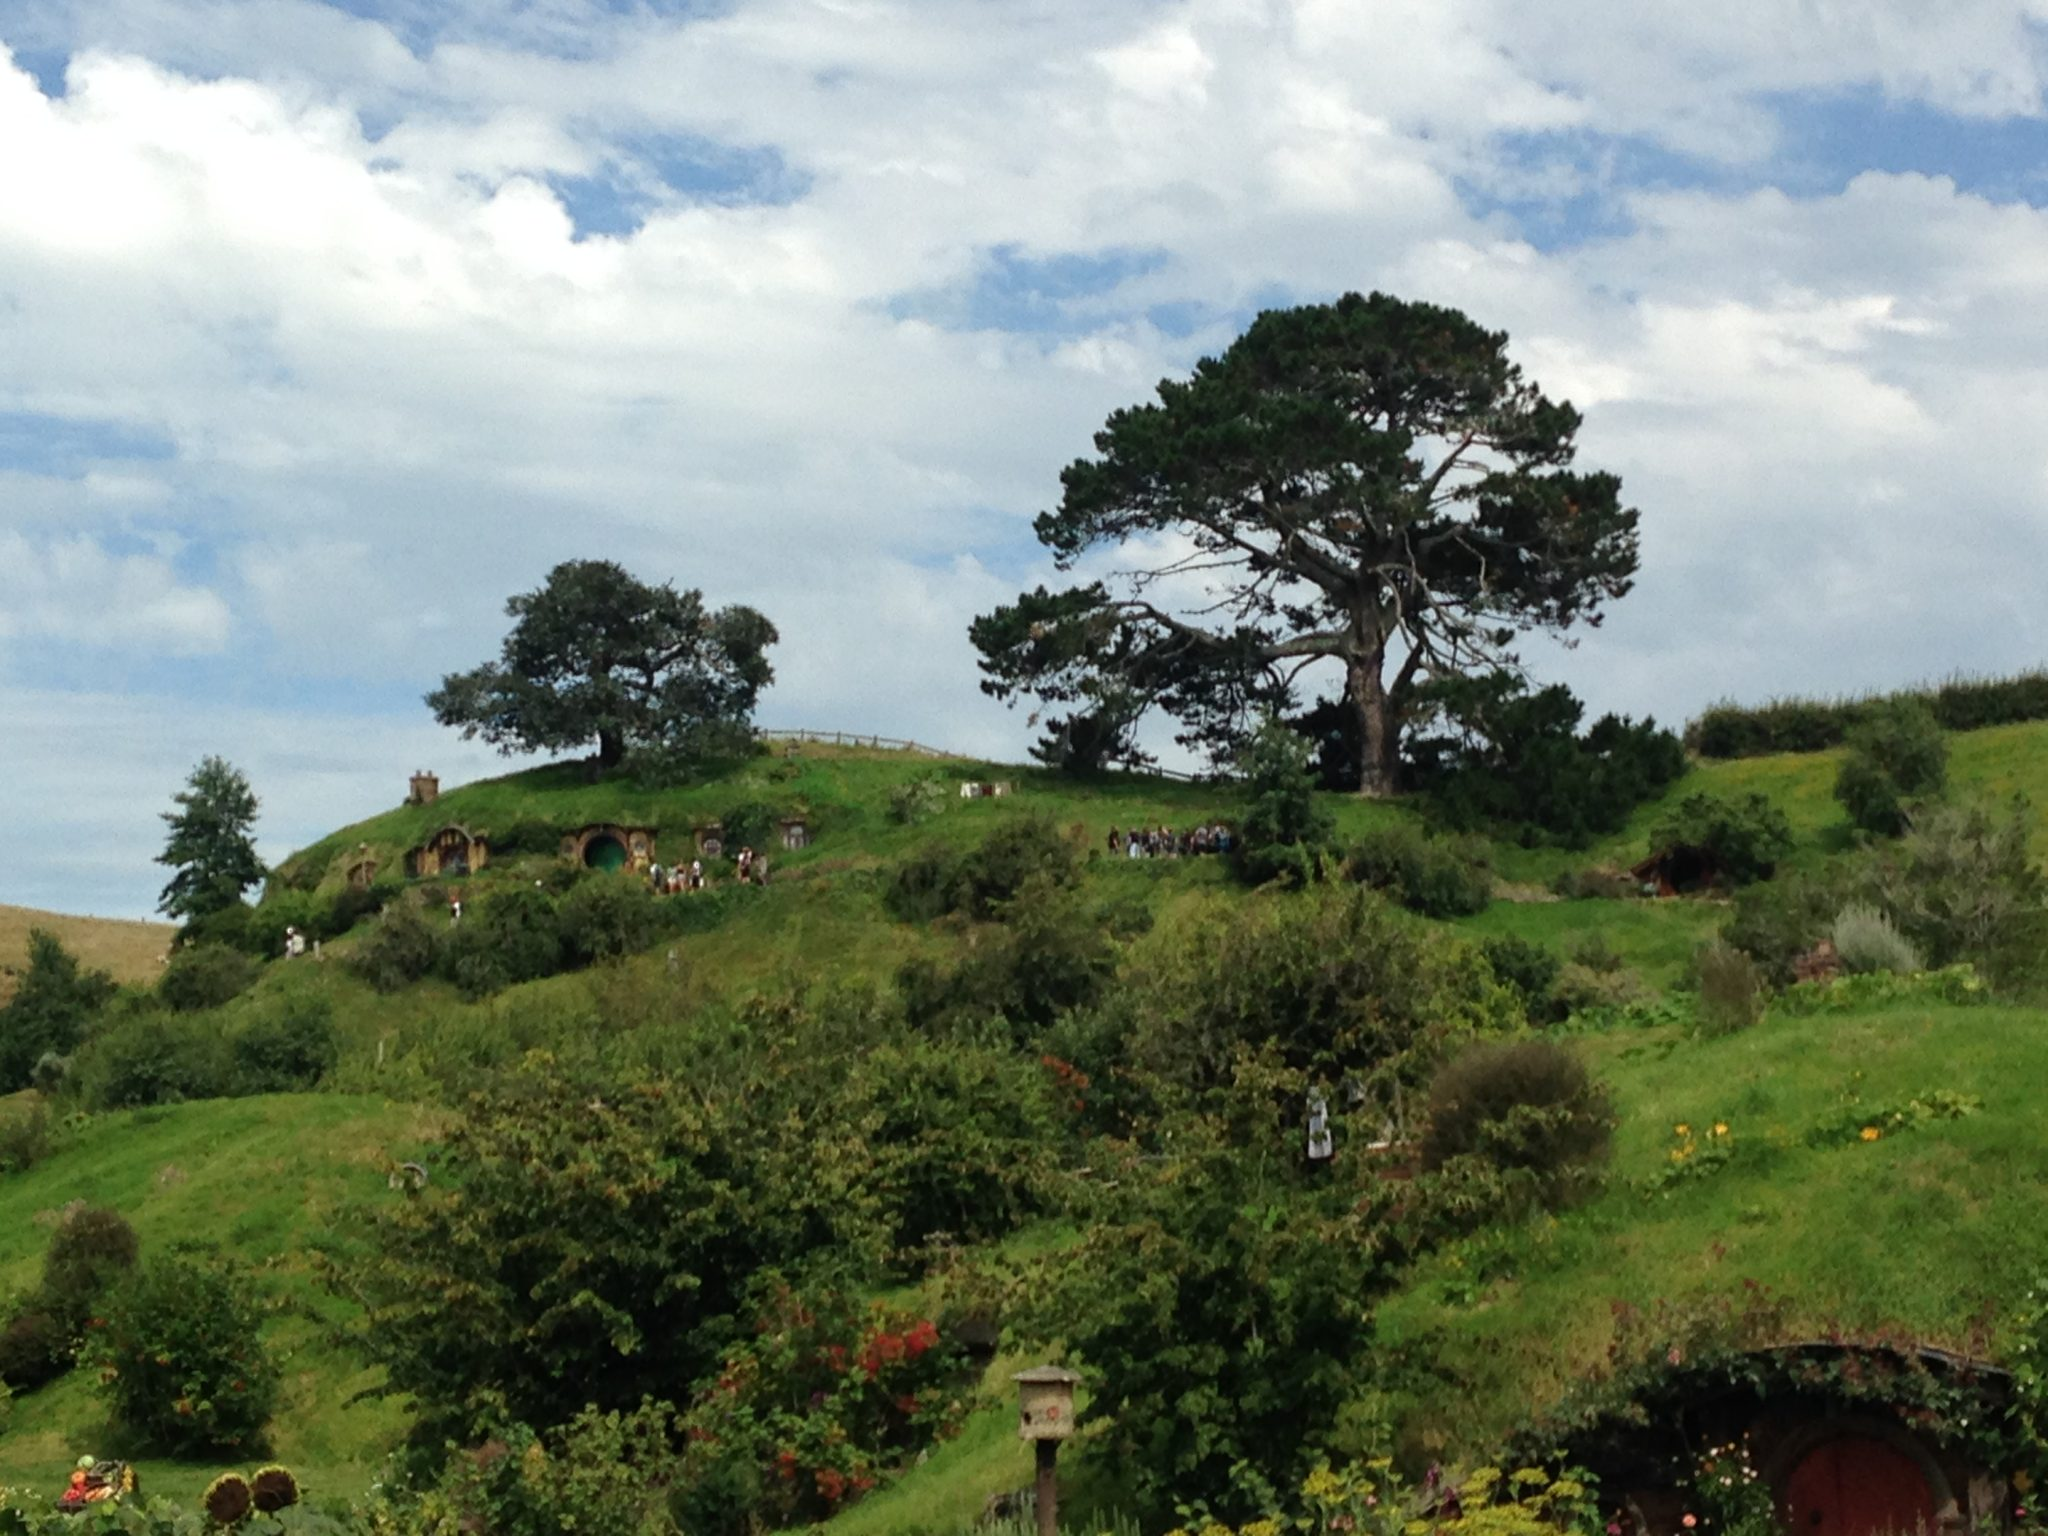 The Shire, Bilbo Baggins, Hobbiton Movie Set, New Zealand.